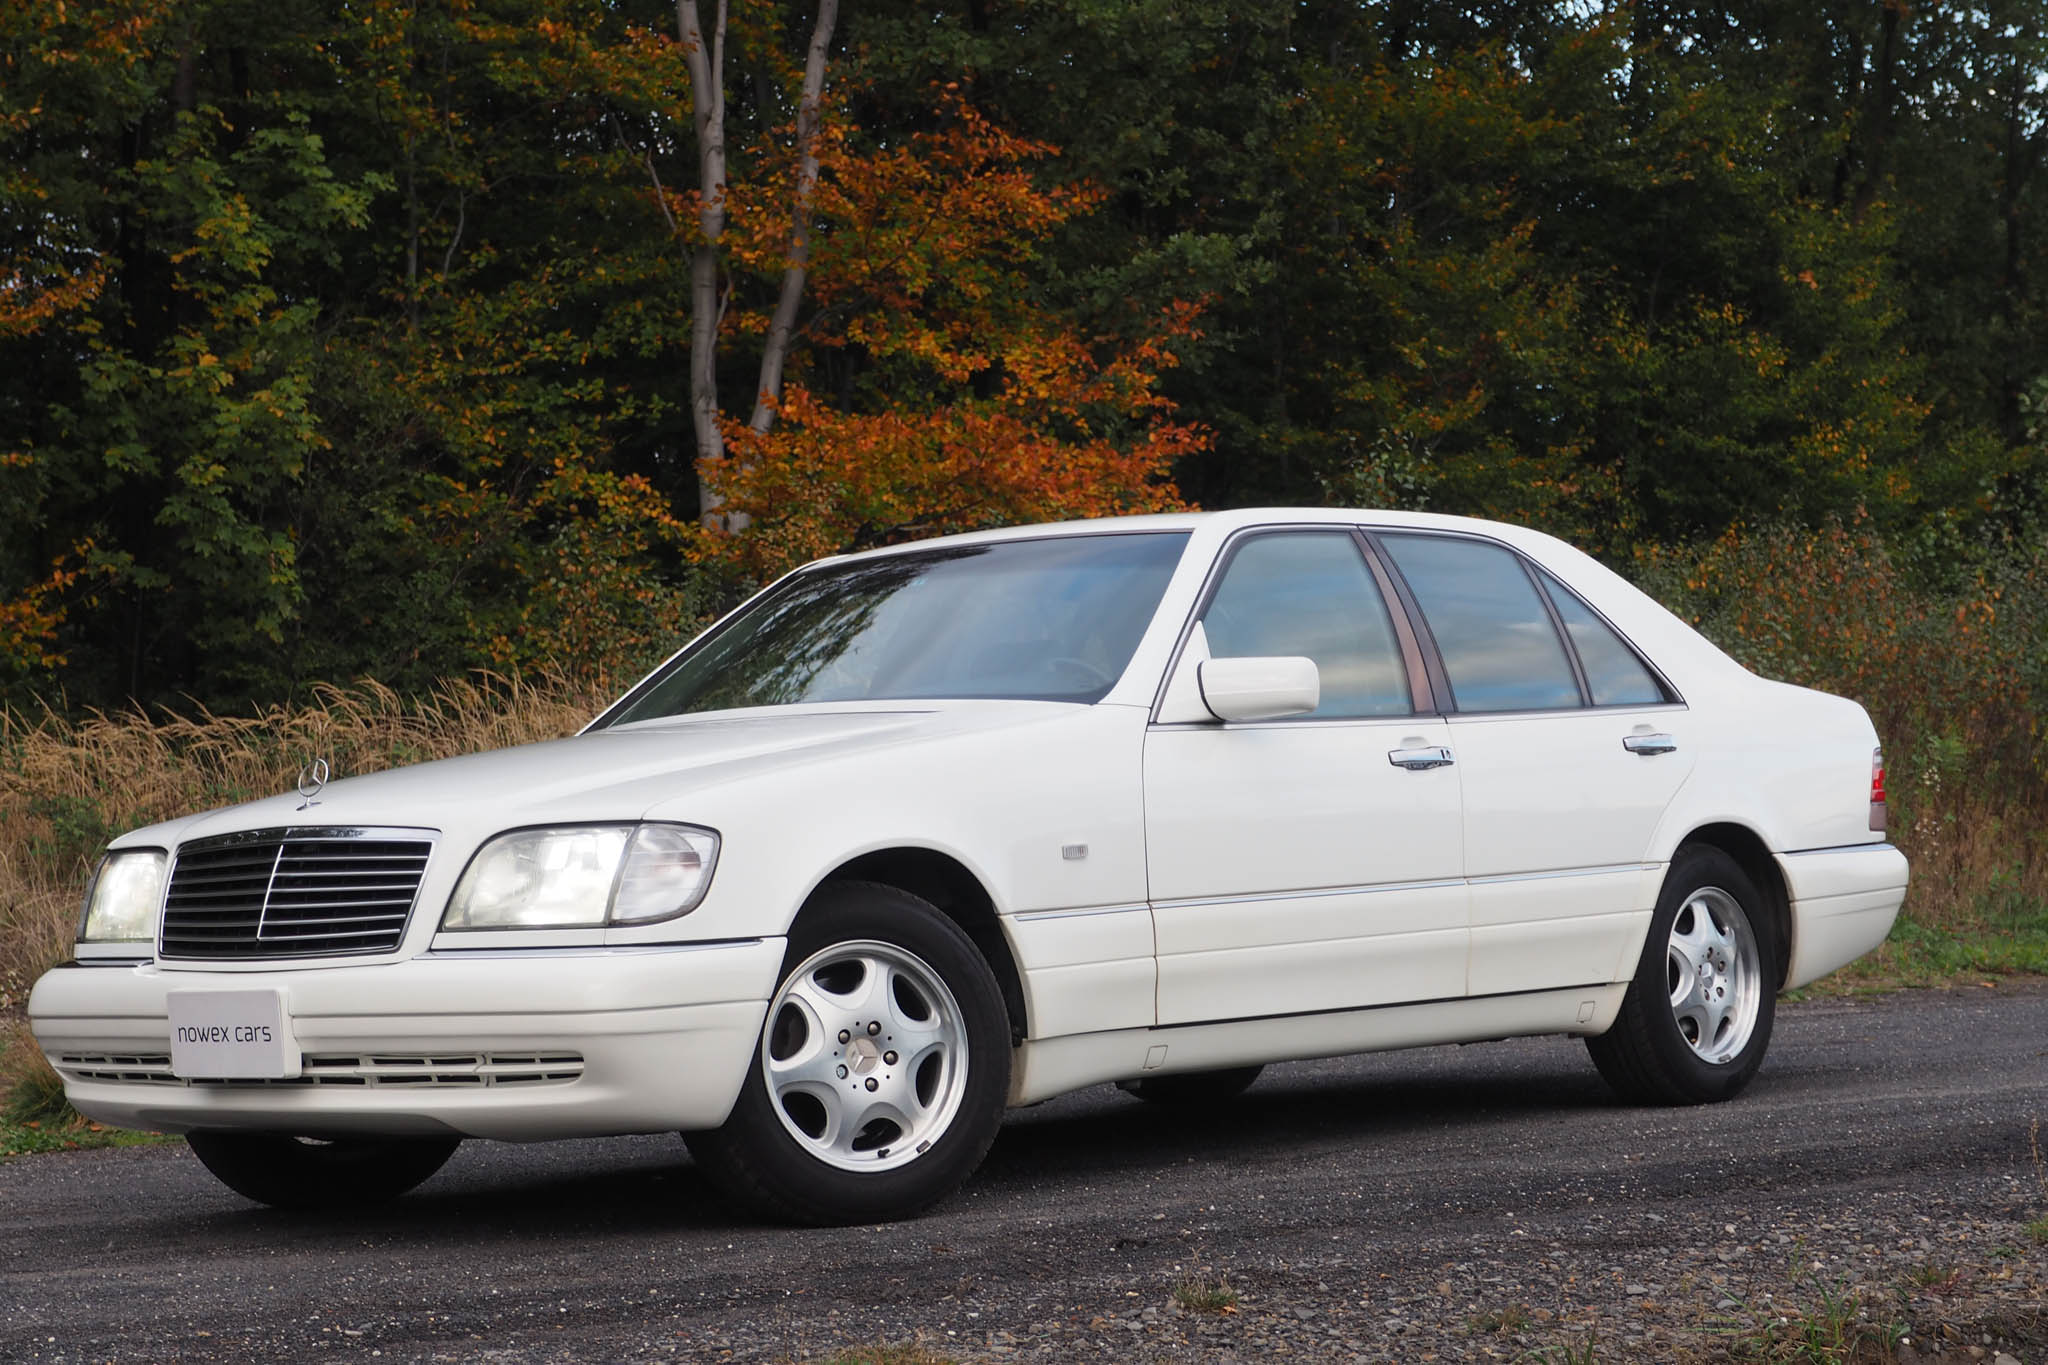 96 mercedes benz s 320 nowex cars for 96 mercedes benz